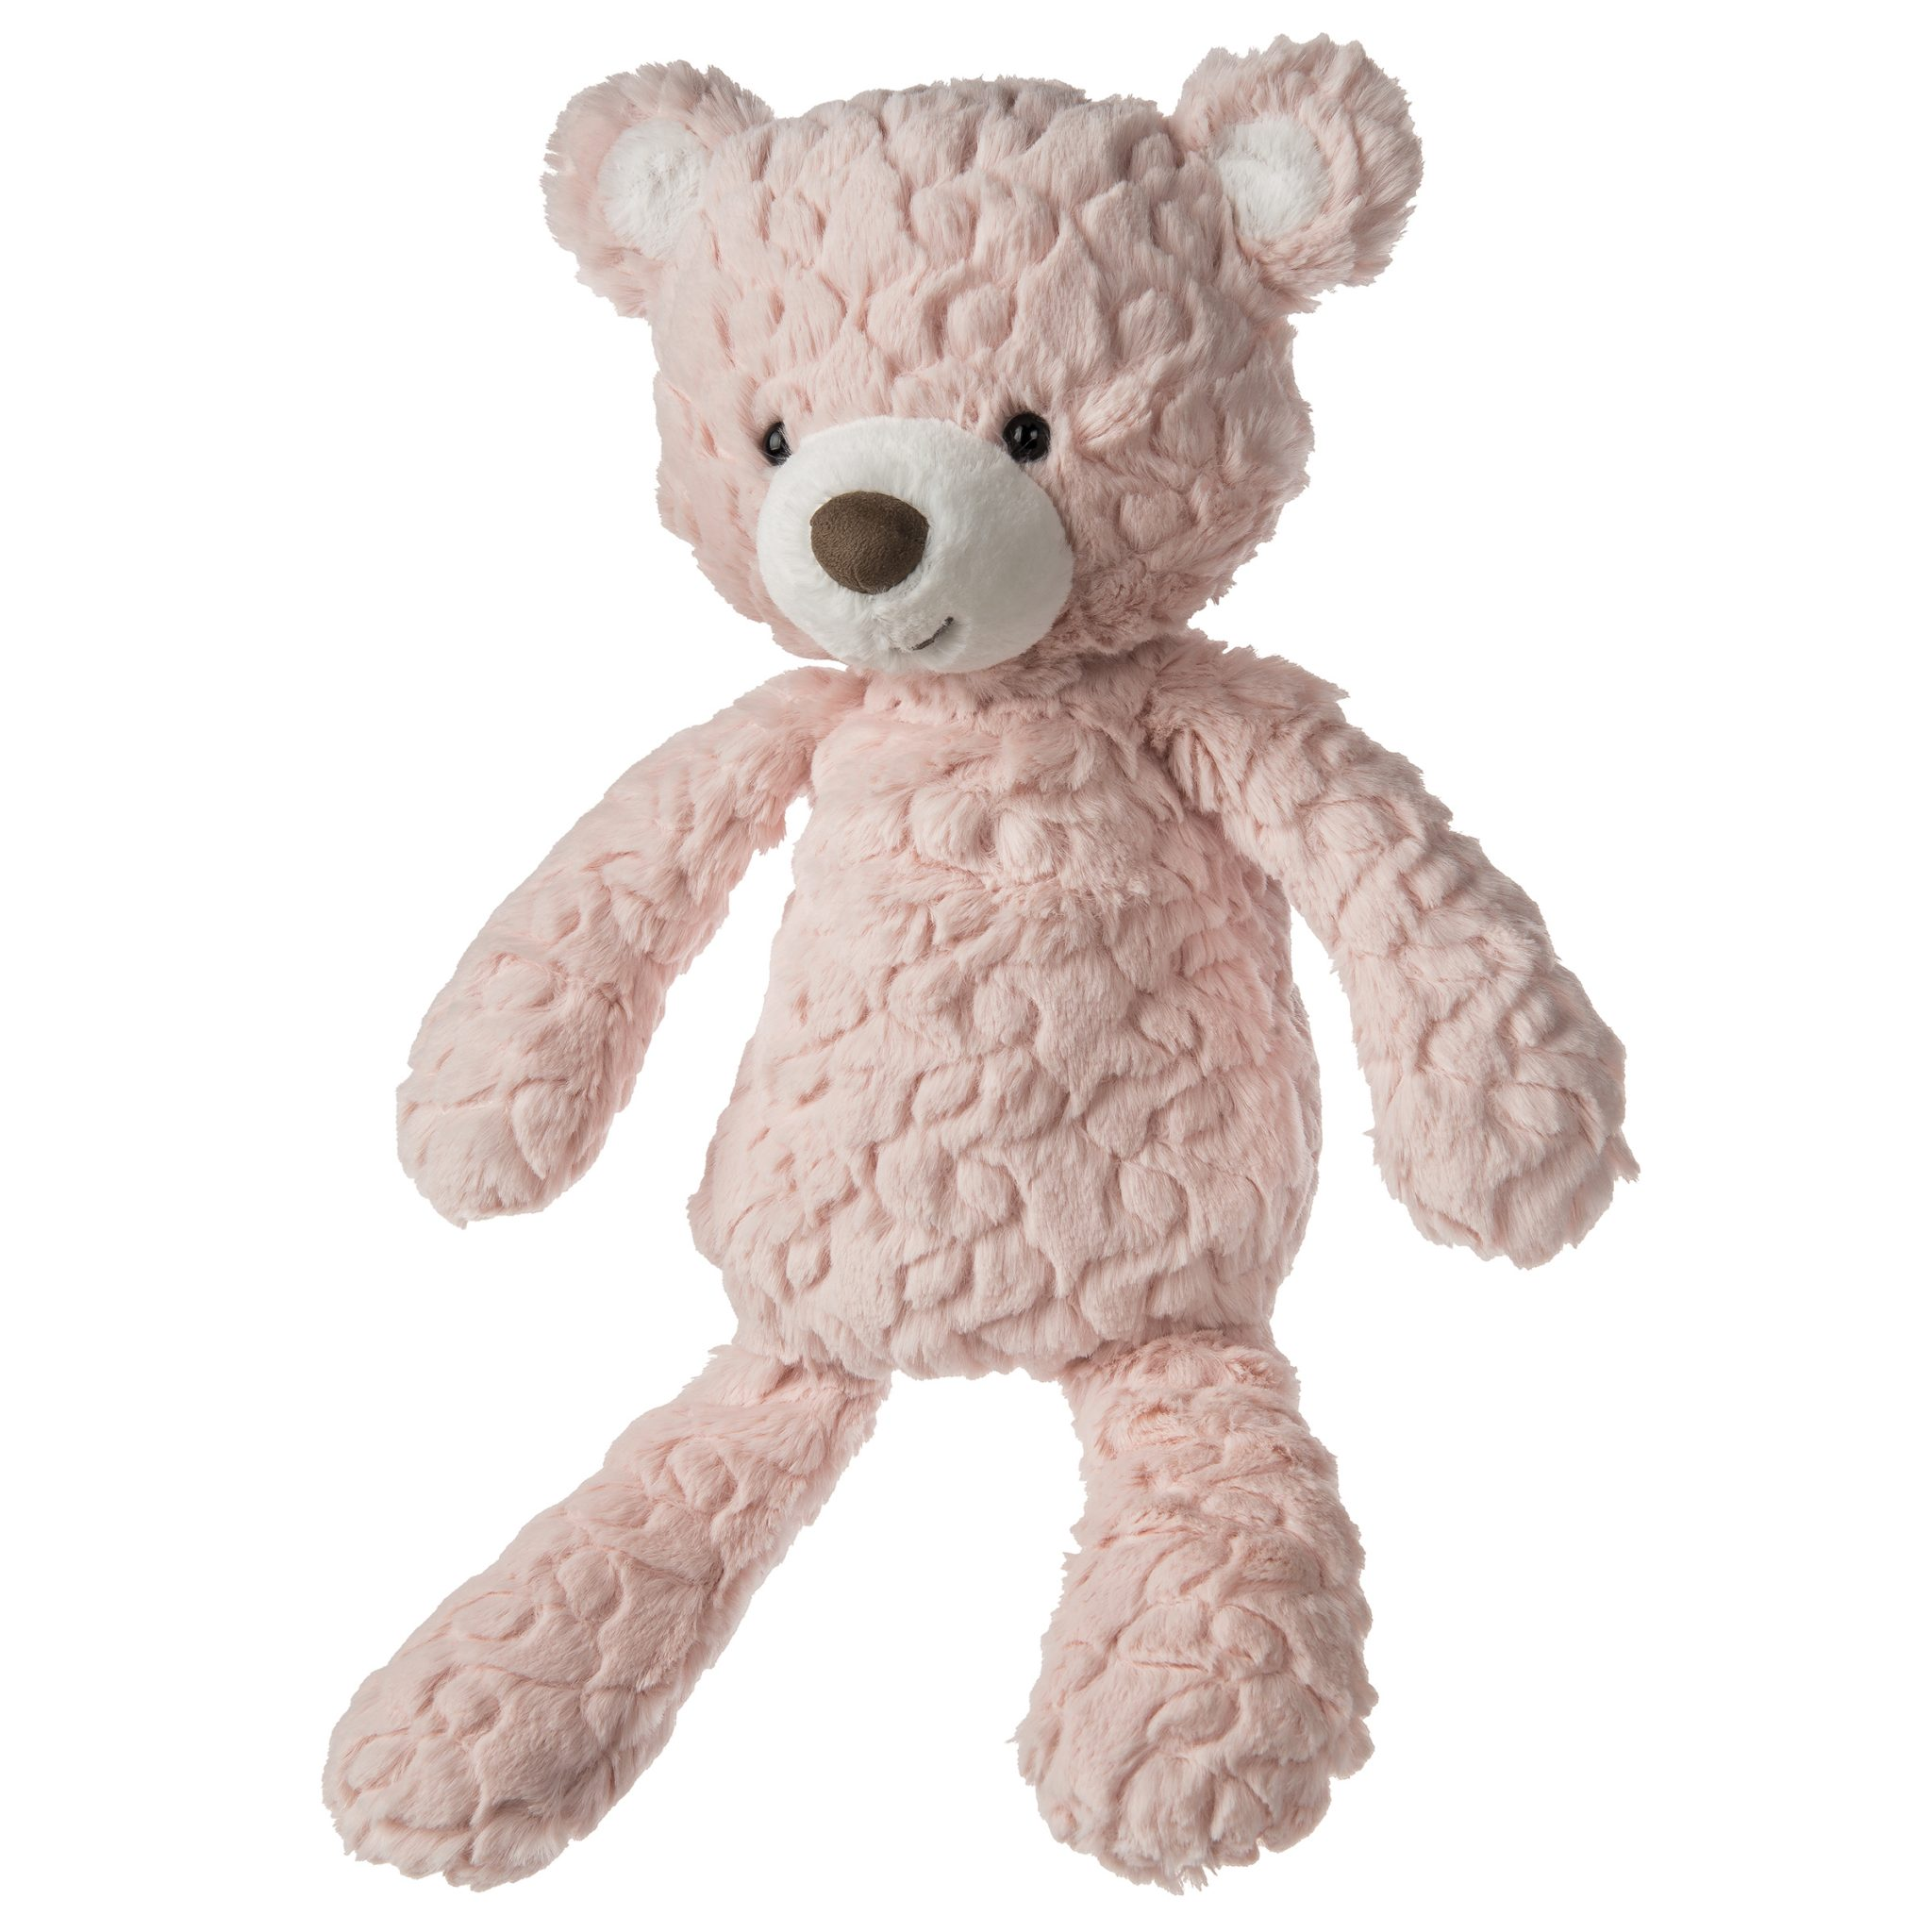 53401 Mary Meyer Blush Putty Bear - 17""